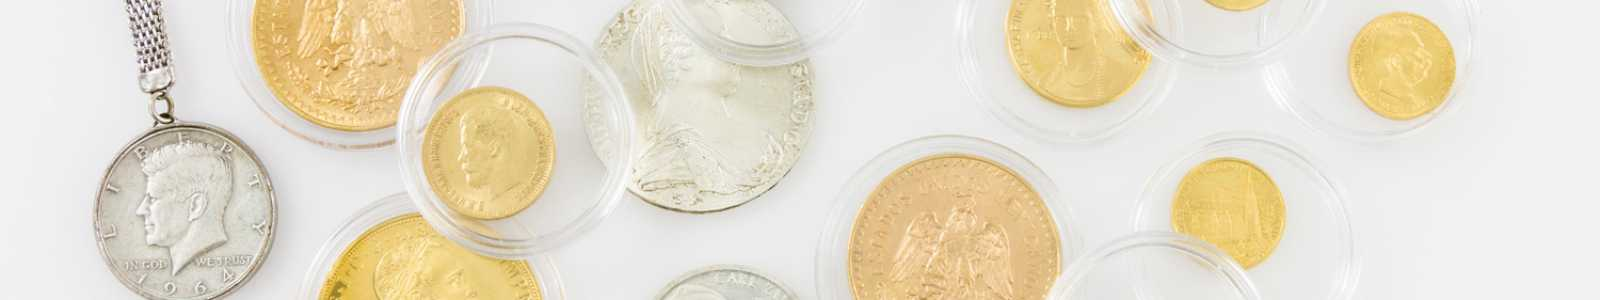 COINS, MEDALS, stamps and banknotes